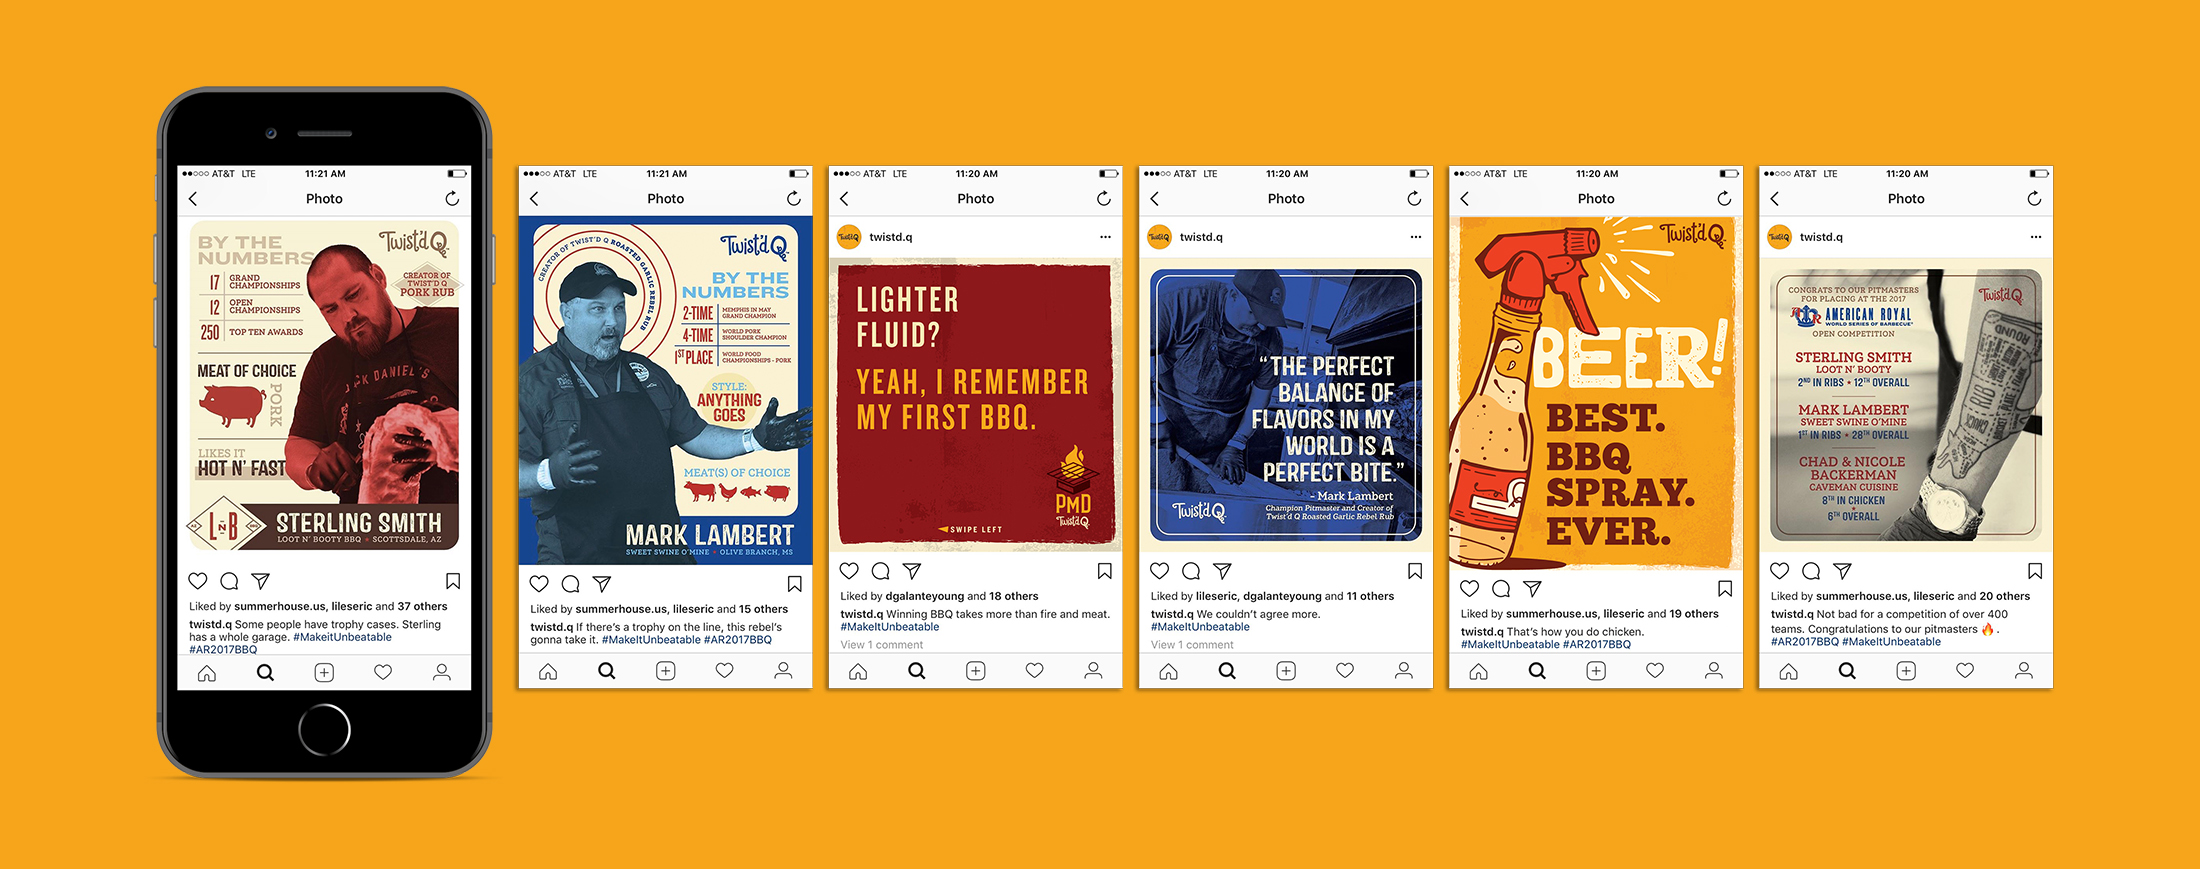 Six different social posts for for Twist'd Q featuring pitmasters, events and tips for grilling.